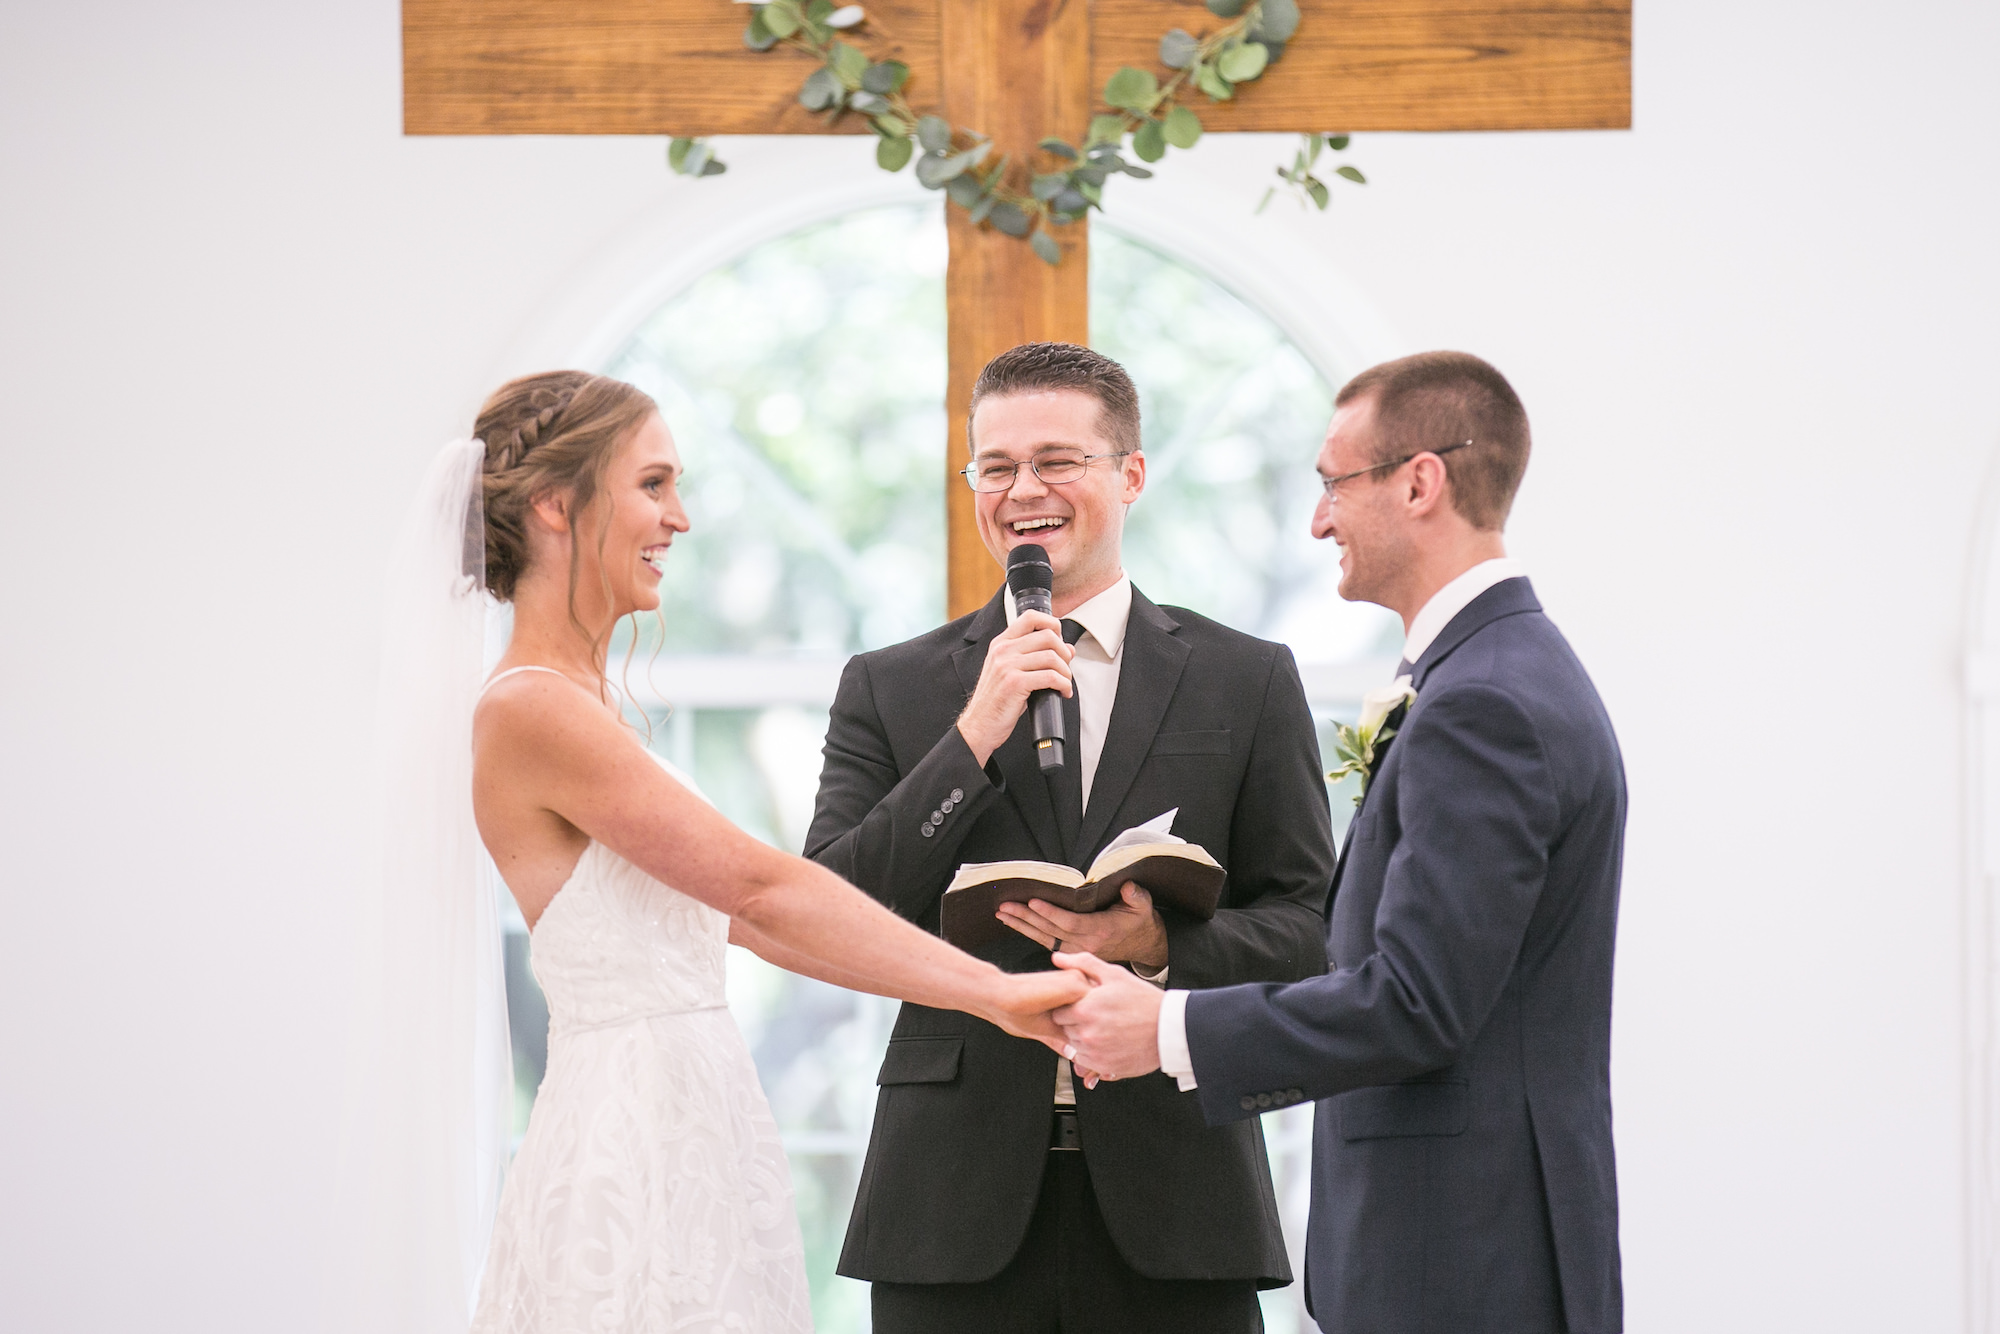 Classic Bride and Groom Exchanging Wedding Vows During Traditional Church Ceremony   Tampa Bay Wedding Photographer Carrie Wildes Photography   Safety Harbor Wedding Venue Harborside Chapel